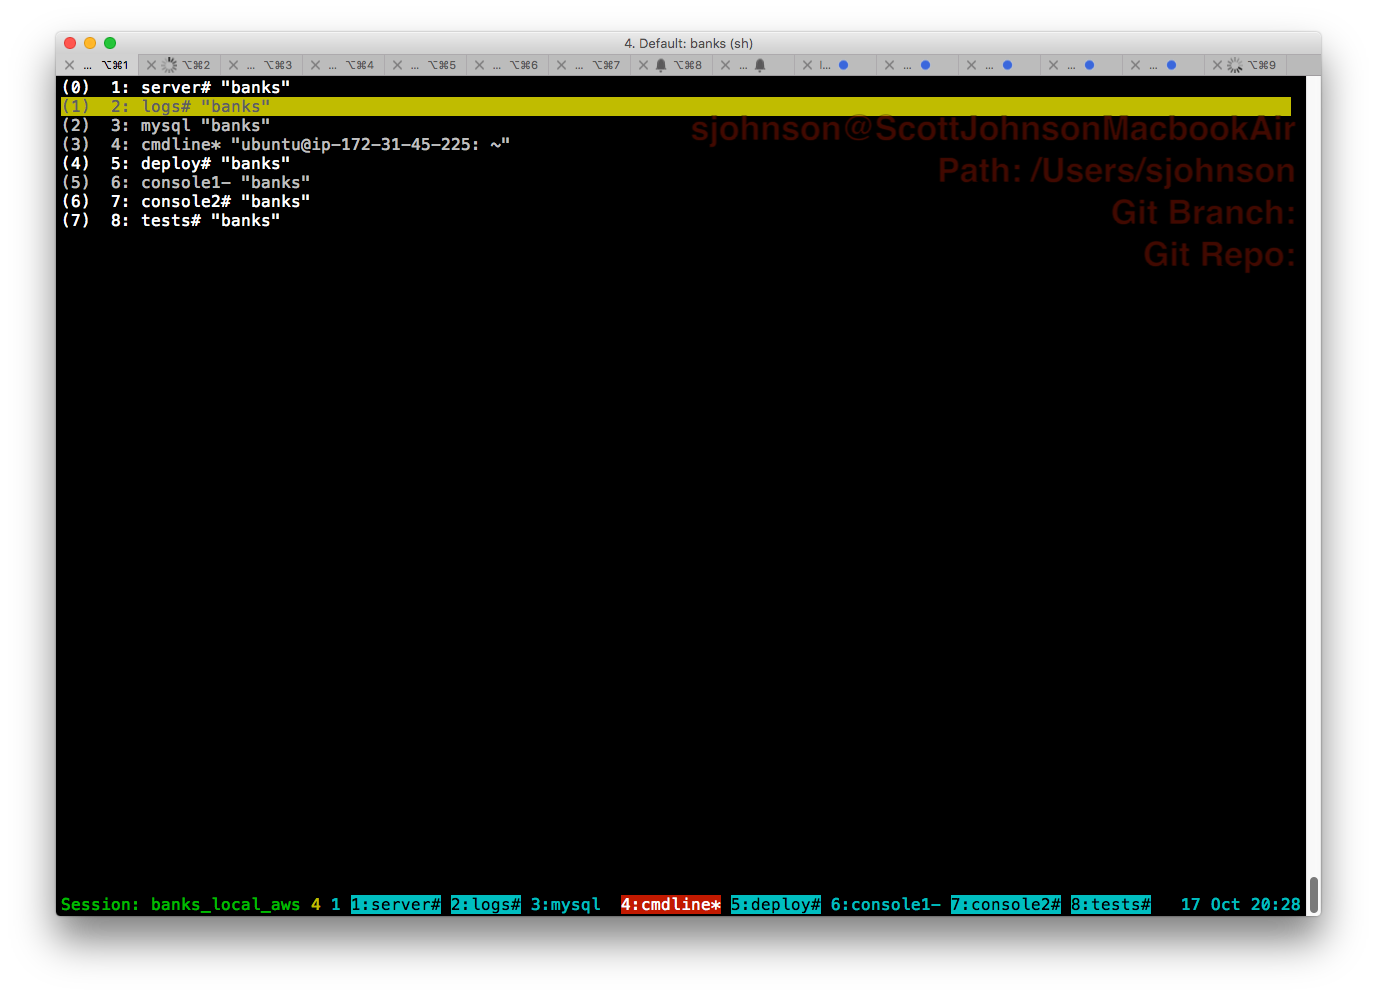 tmux_rails_dev_flow.png